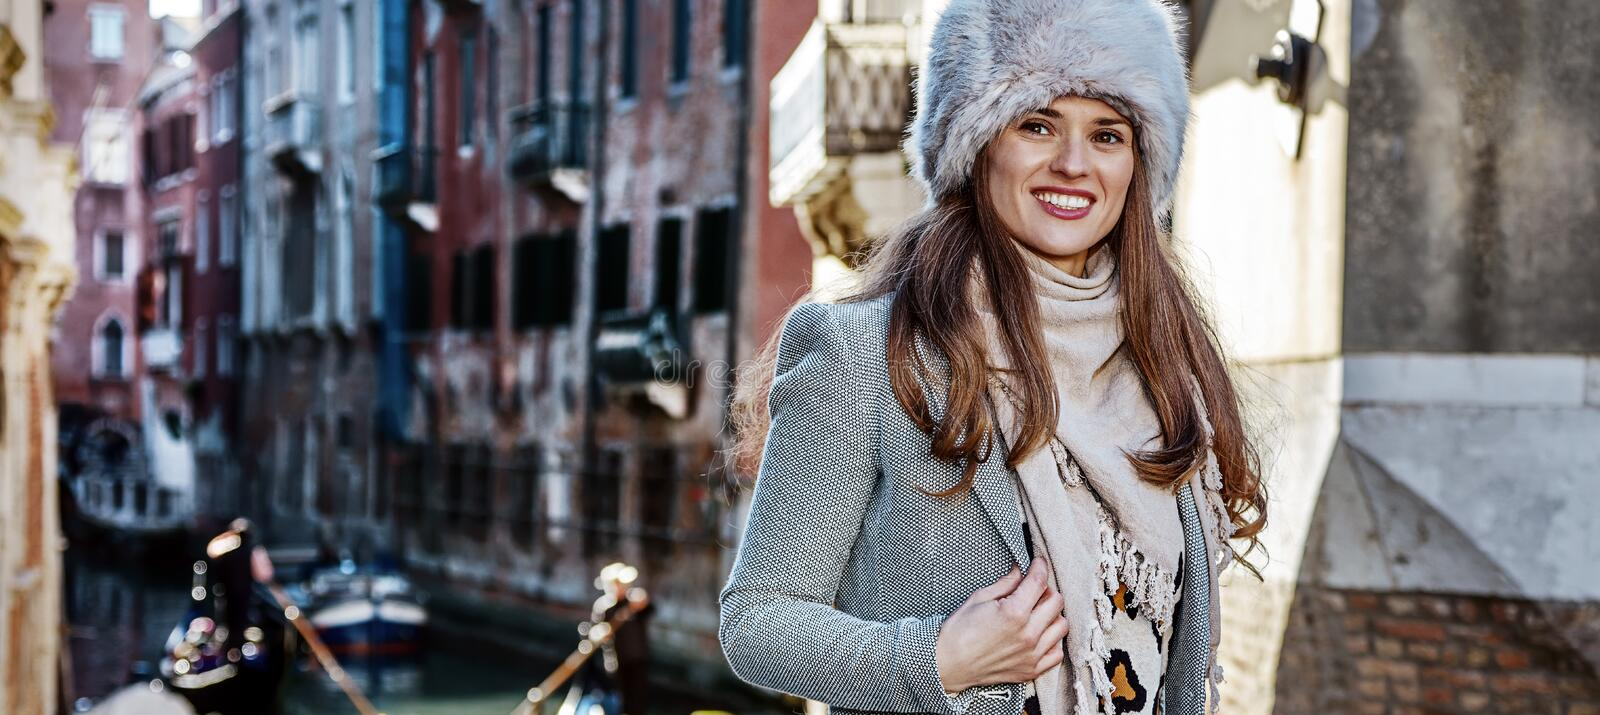 Traveller woman in Venice, Italy looking into the distance. Venice. Off the Beaten Path. happy trendy traveller woman in fur hat in Venice, Italy in the winter royalty free stock photos